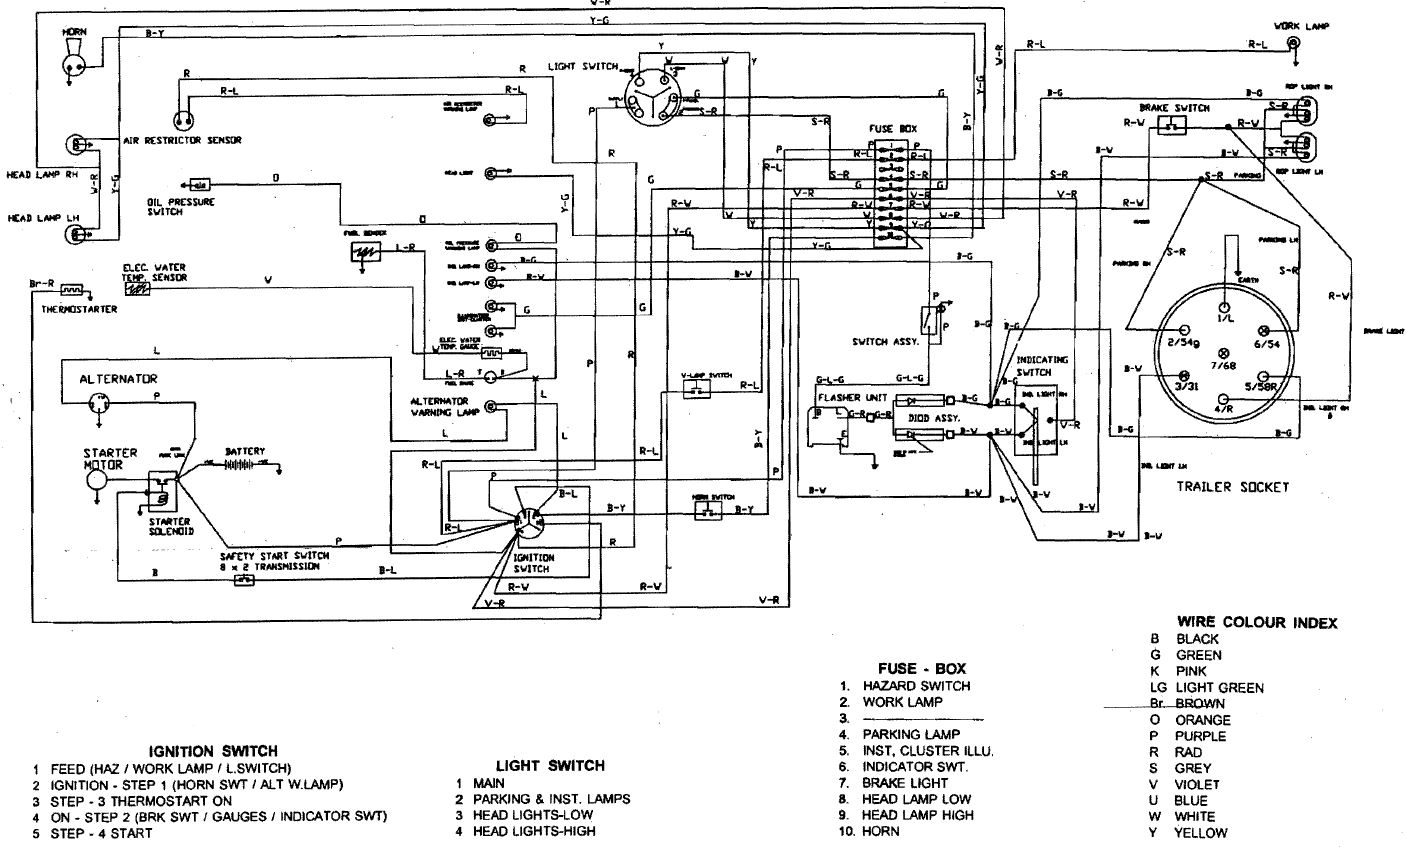 Starter Wiring Diagram Jd 2640 Library Jcb Motor Schematics Diagrams U2022 Rh Parntesis Co For John Deere